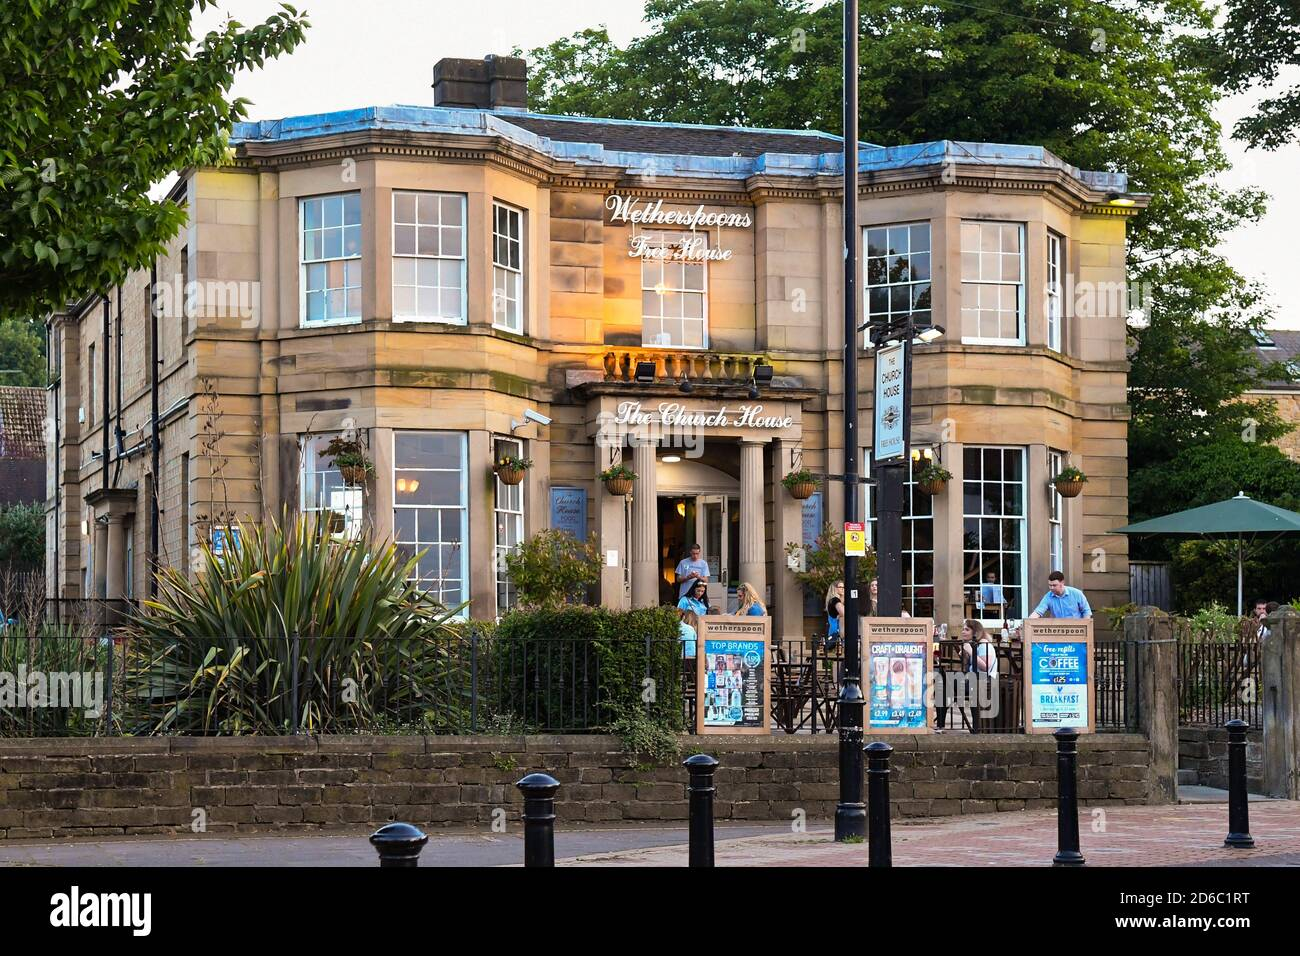 Wetherspoons pub The Church House, Wath upon Dearne, Rotherham, South Yorkshire, Inglaterra, Reino Unido Foto de stock